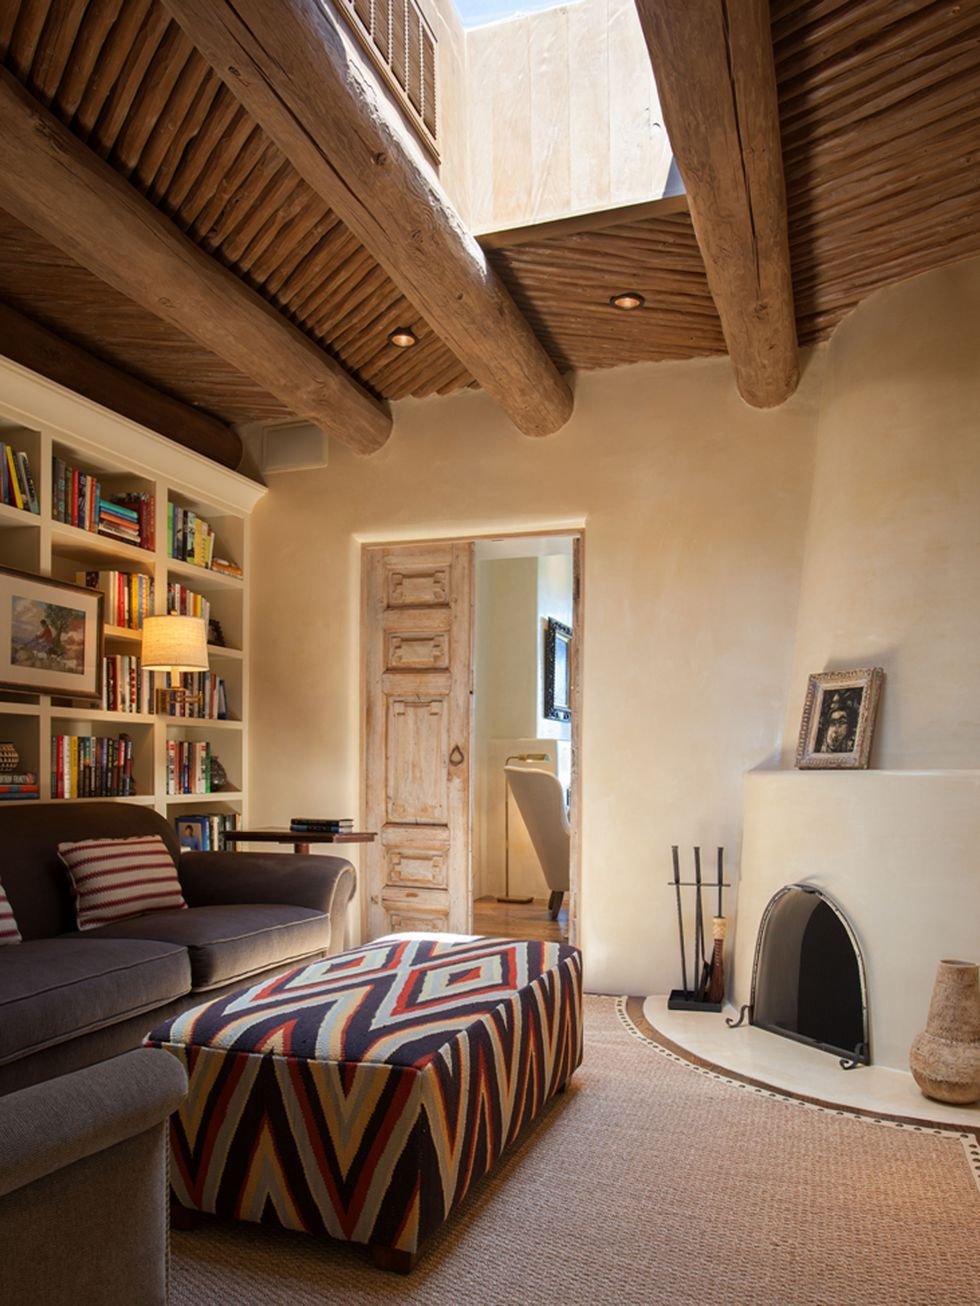 Step Inside a Stunning Adobe Home in Santa Fe | House ideas ...